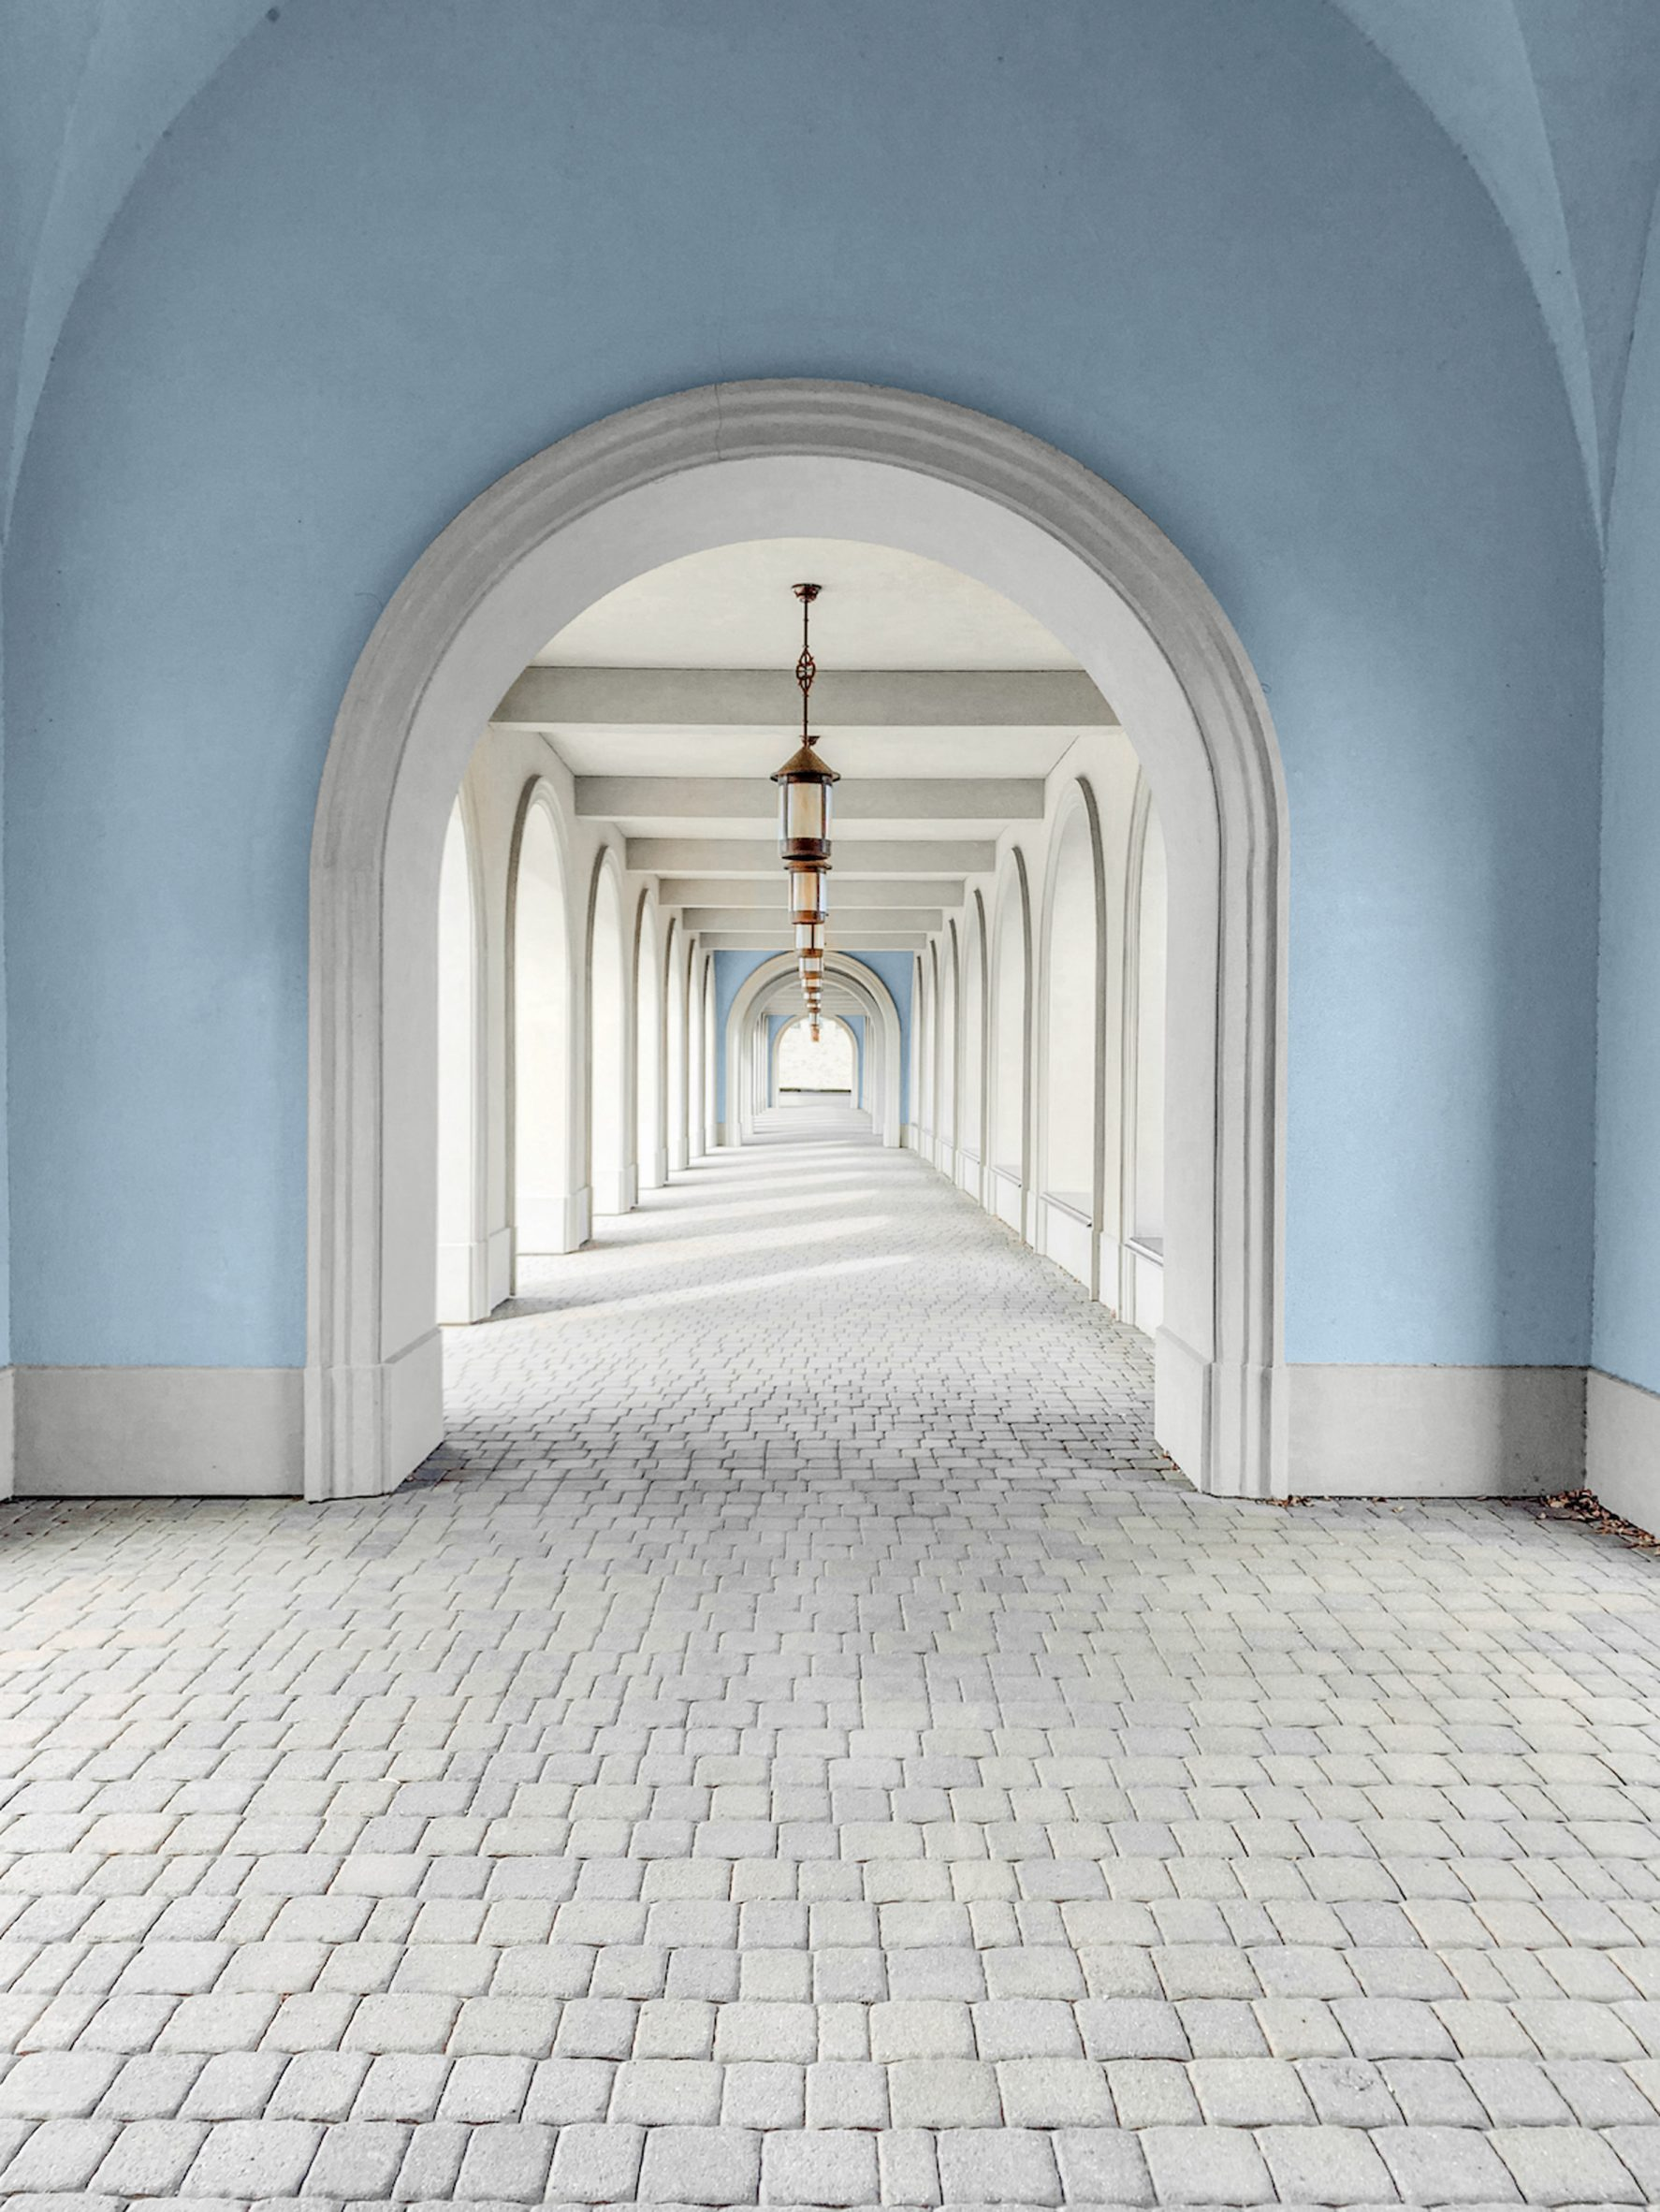 A blue rounded archway